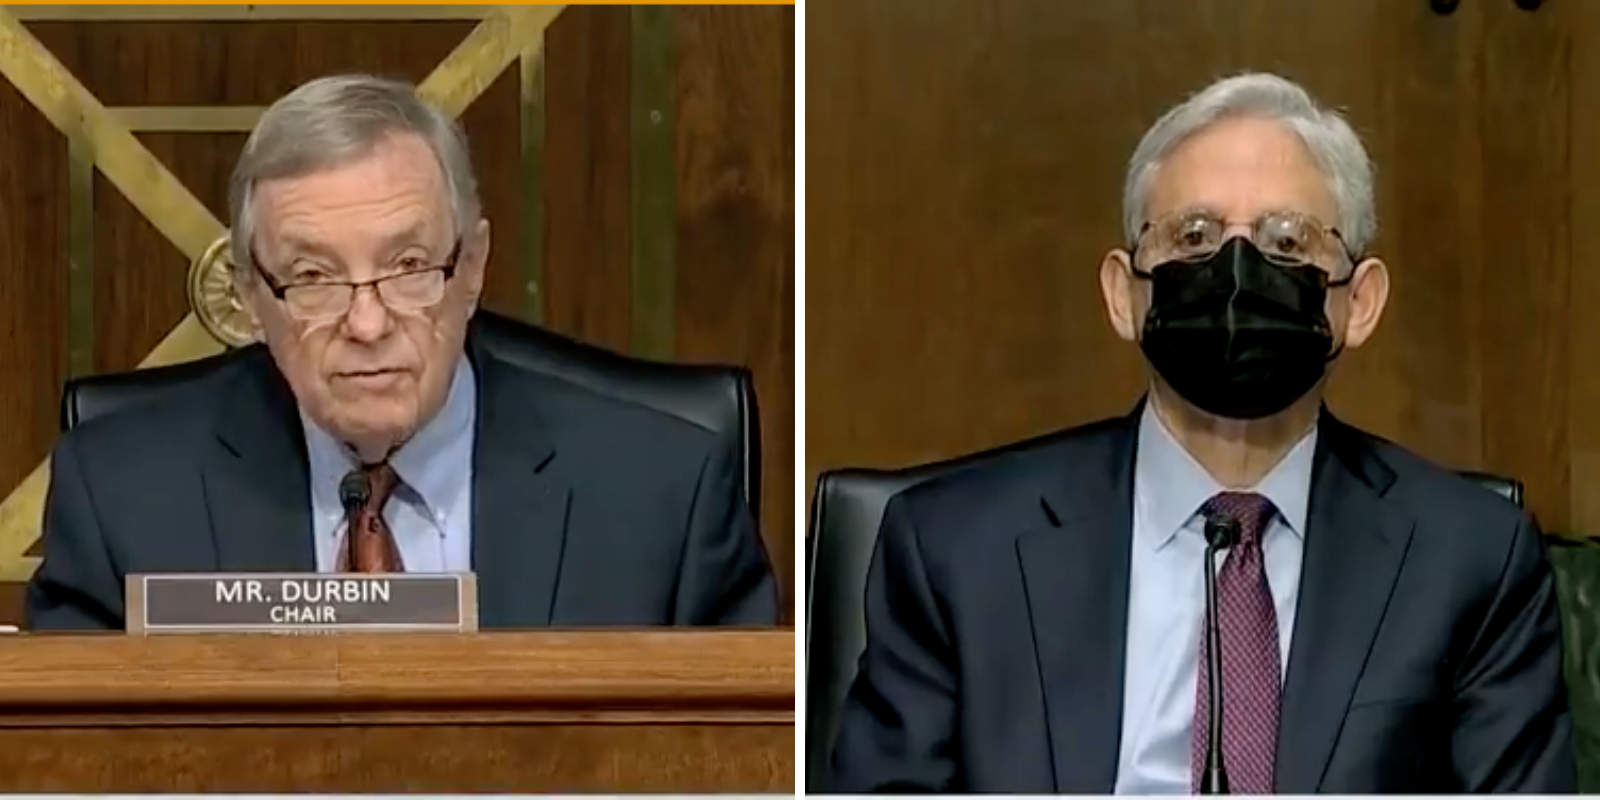 WATCH: Sen. Durbin praises AG Garland for mobilizing the FBI against parents at school board meetings, Hannah Nightingale, on October 27, 2021 at 4:57 pm The Post Millennial